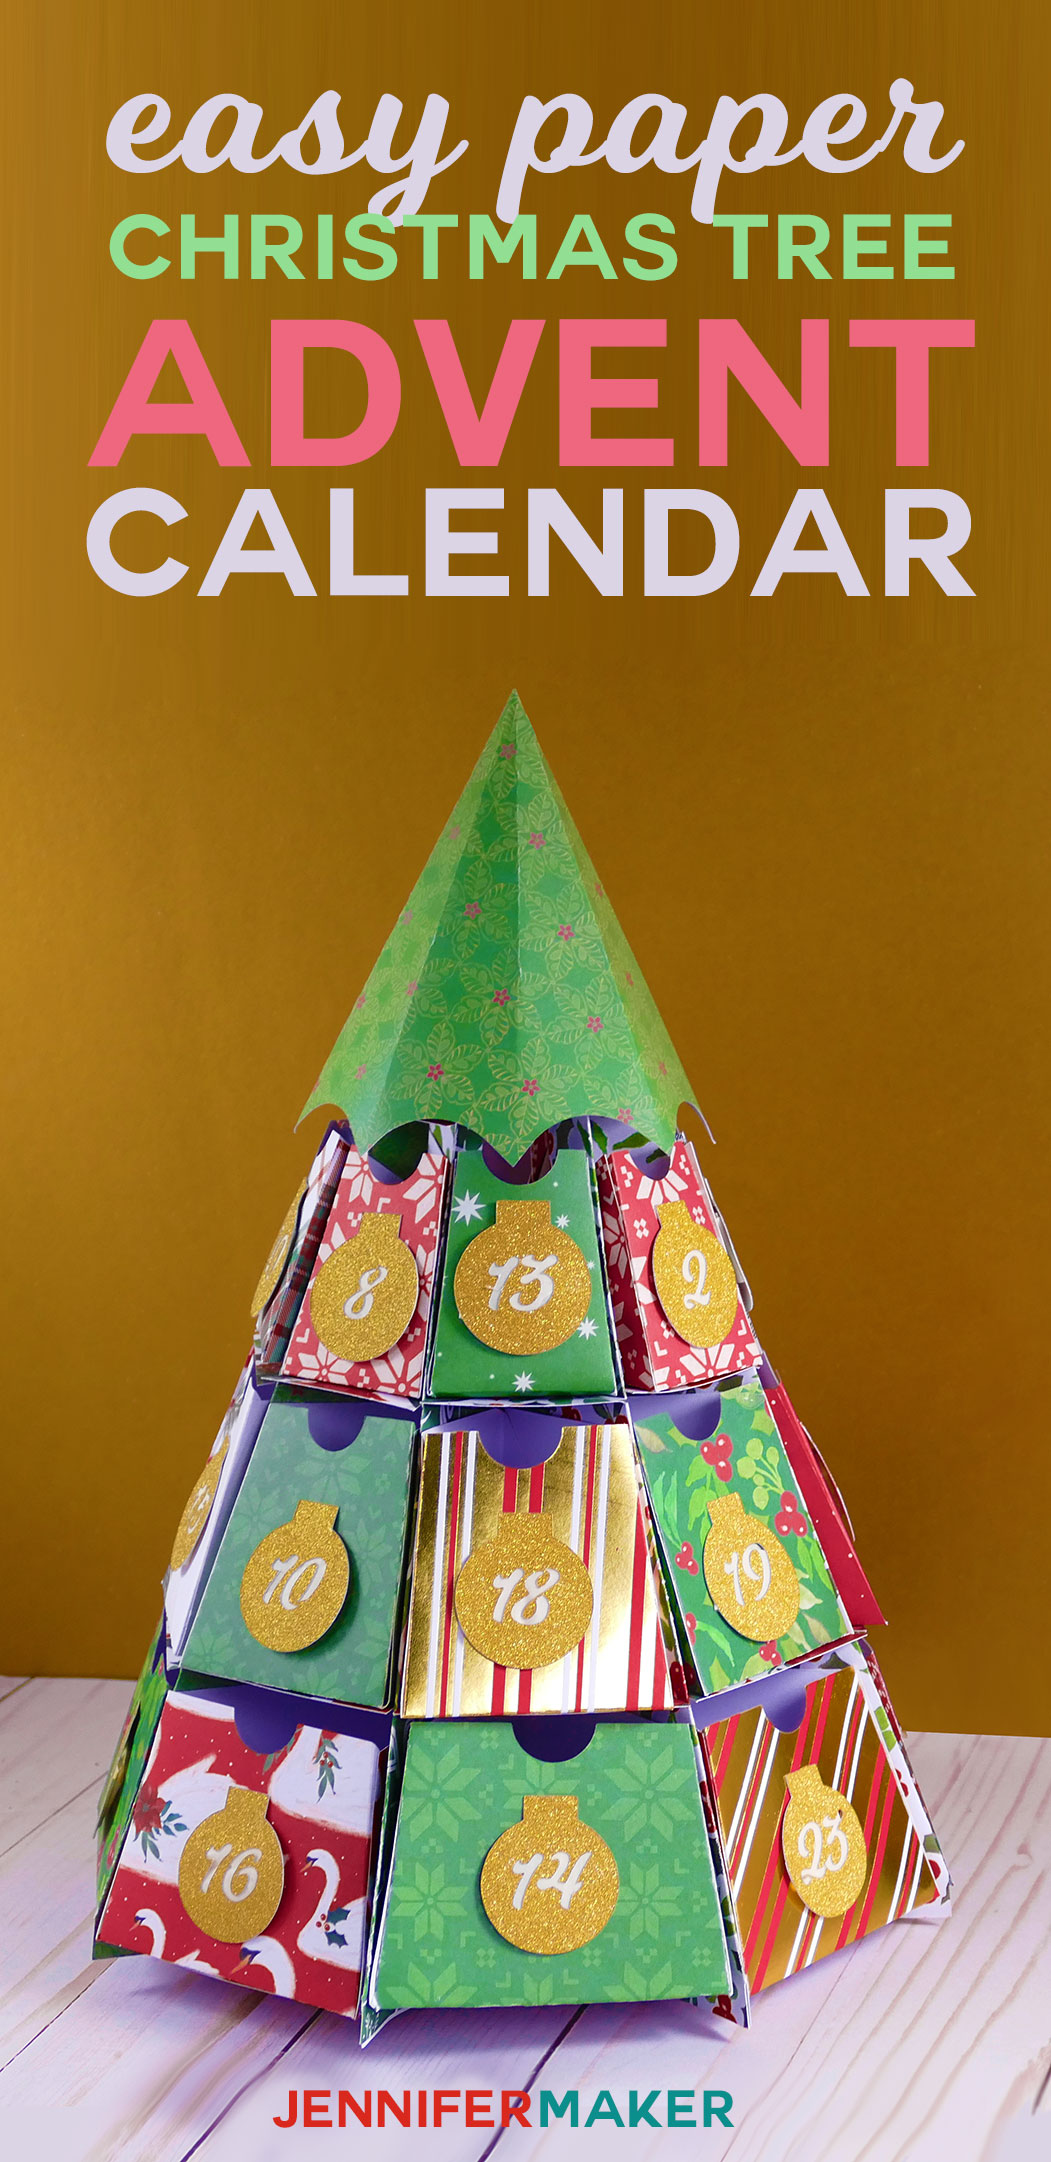 Christmas Tree Advent Calendar: 25 Days of Maker Projects ...